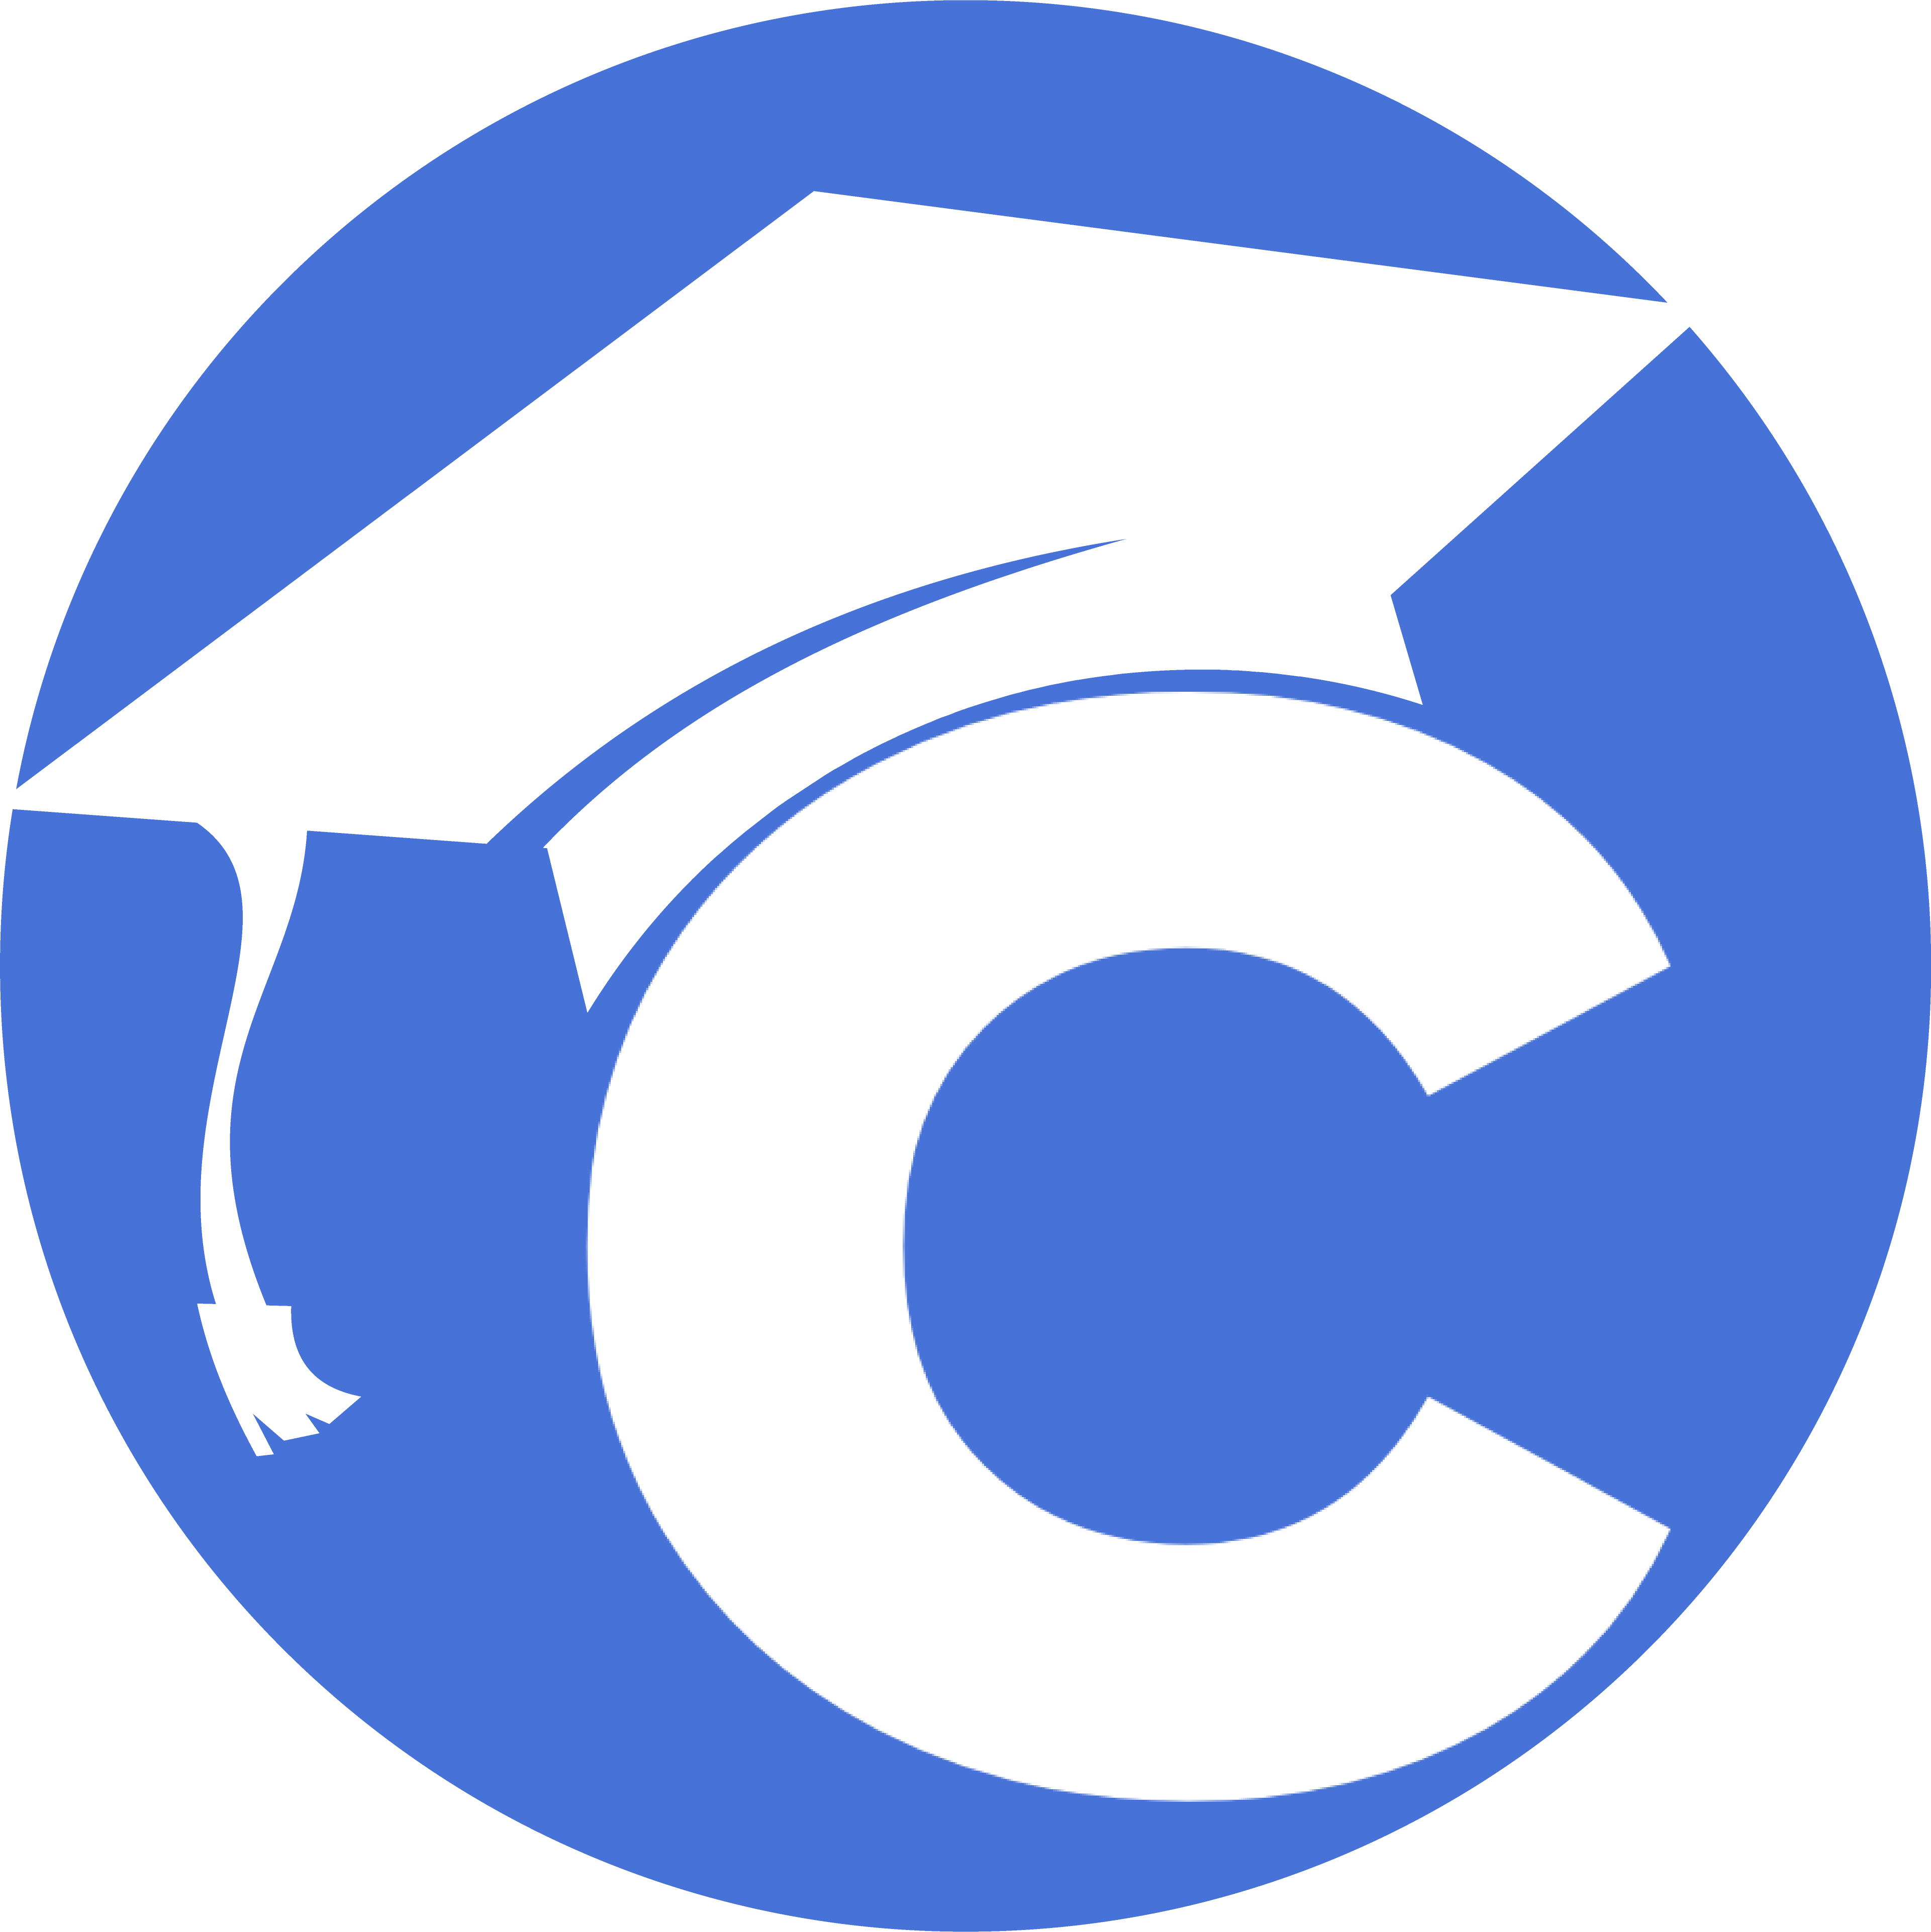 CollegeTrackr